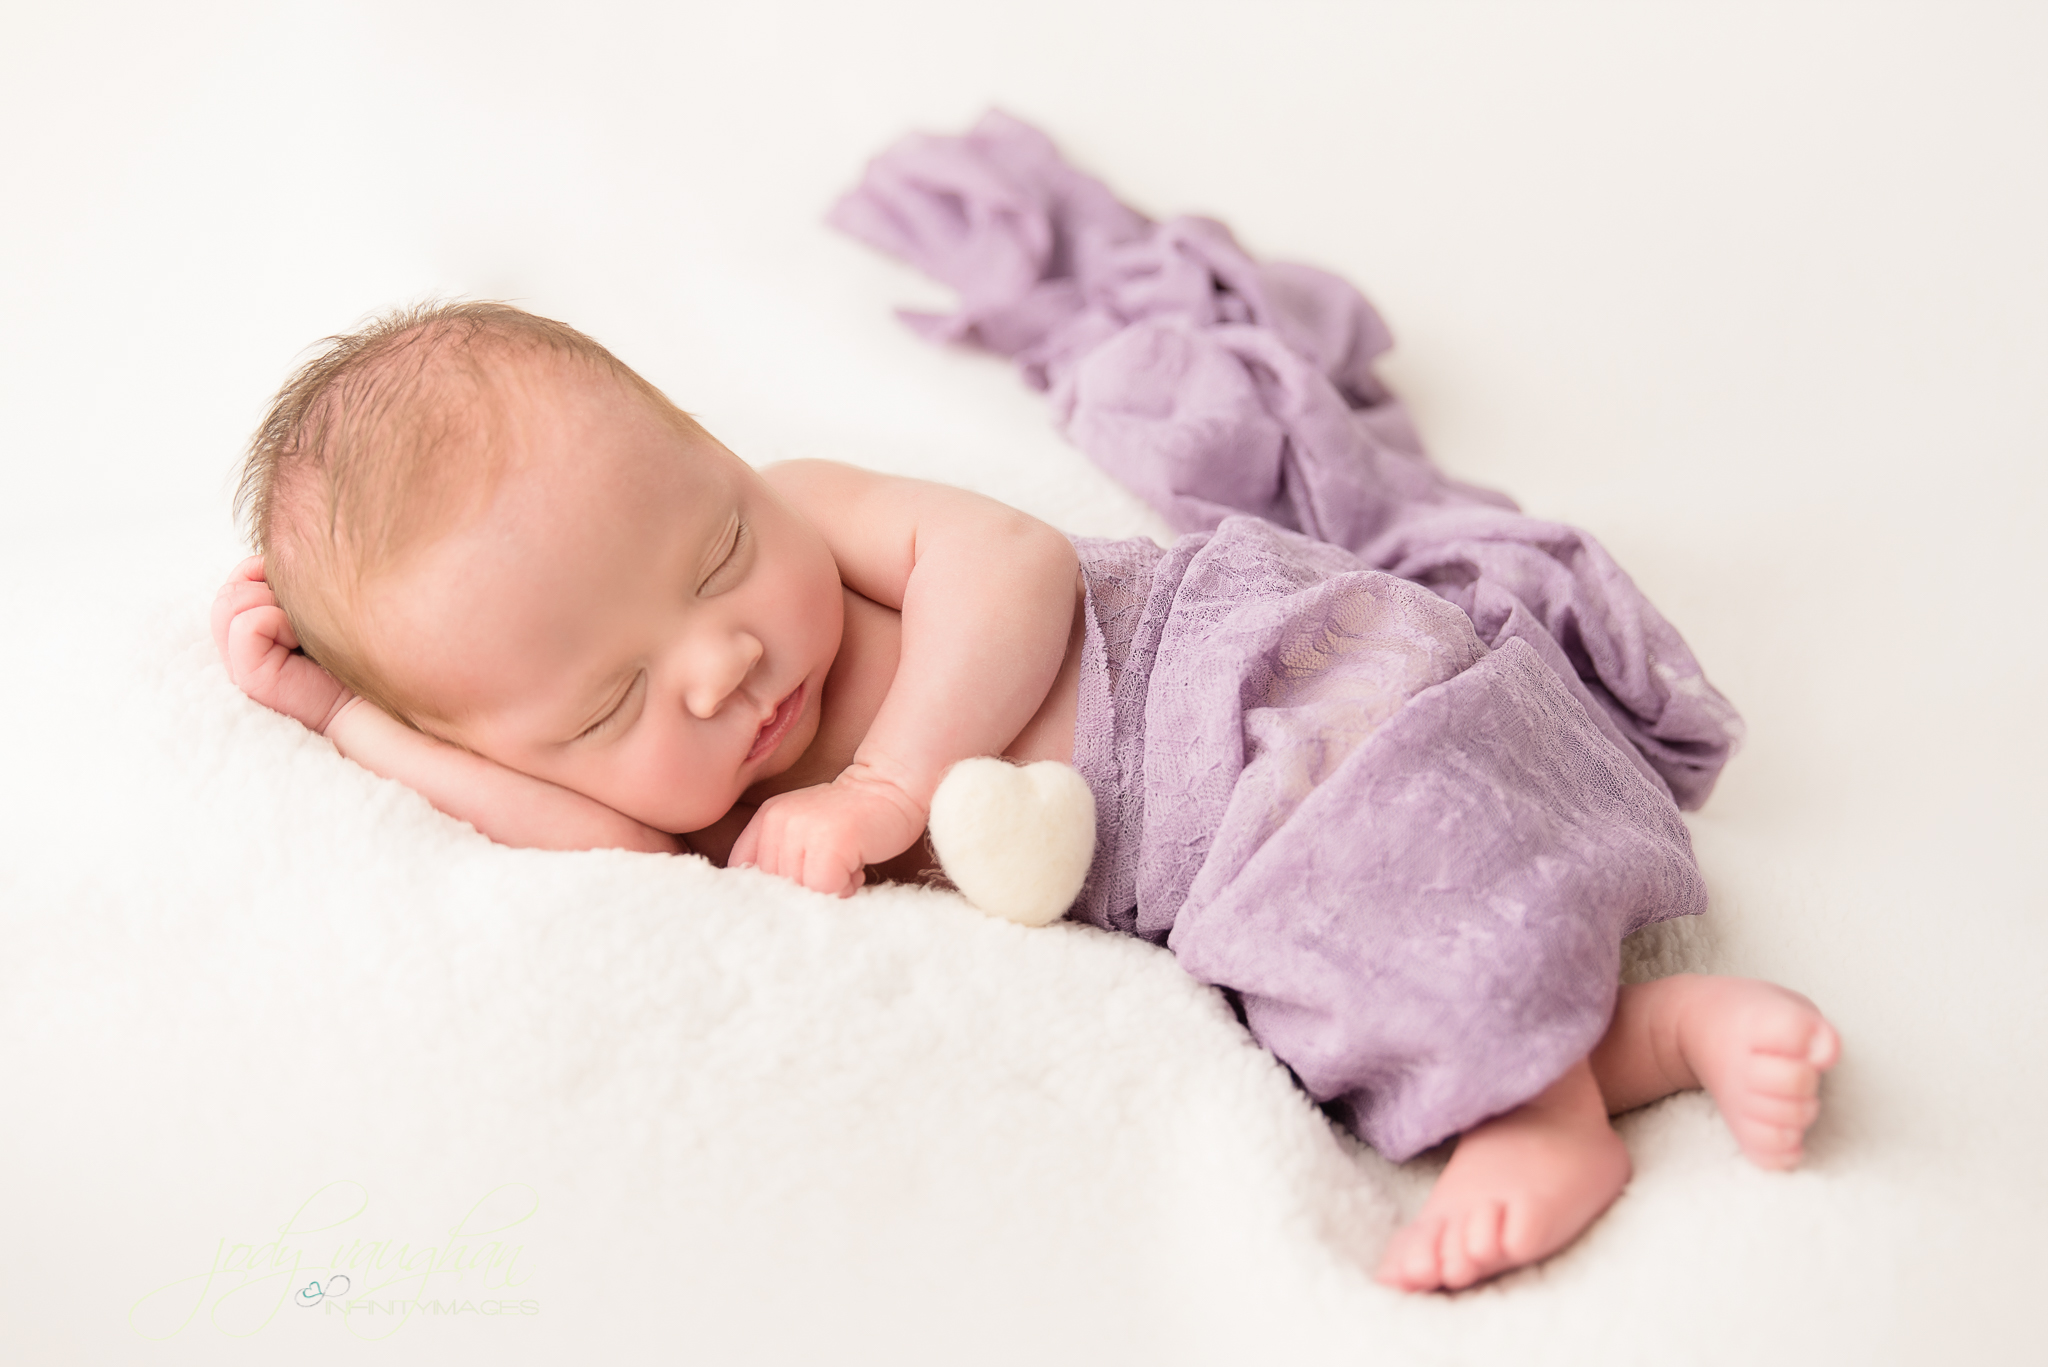 Newborn 31 -  by Jody Vaughan Infinity Images